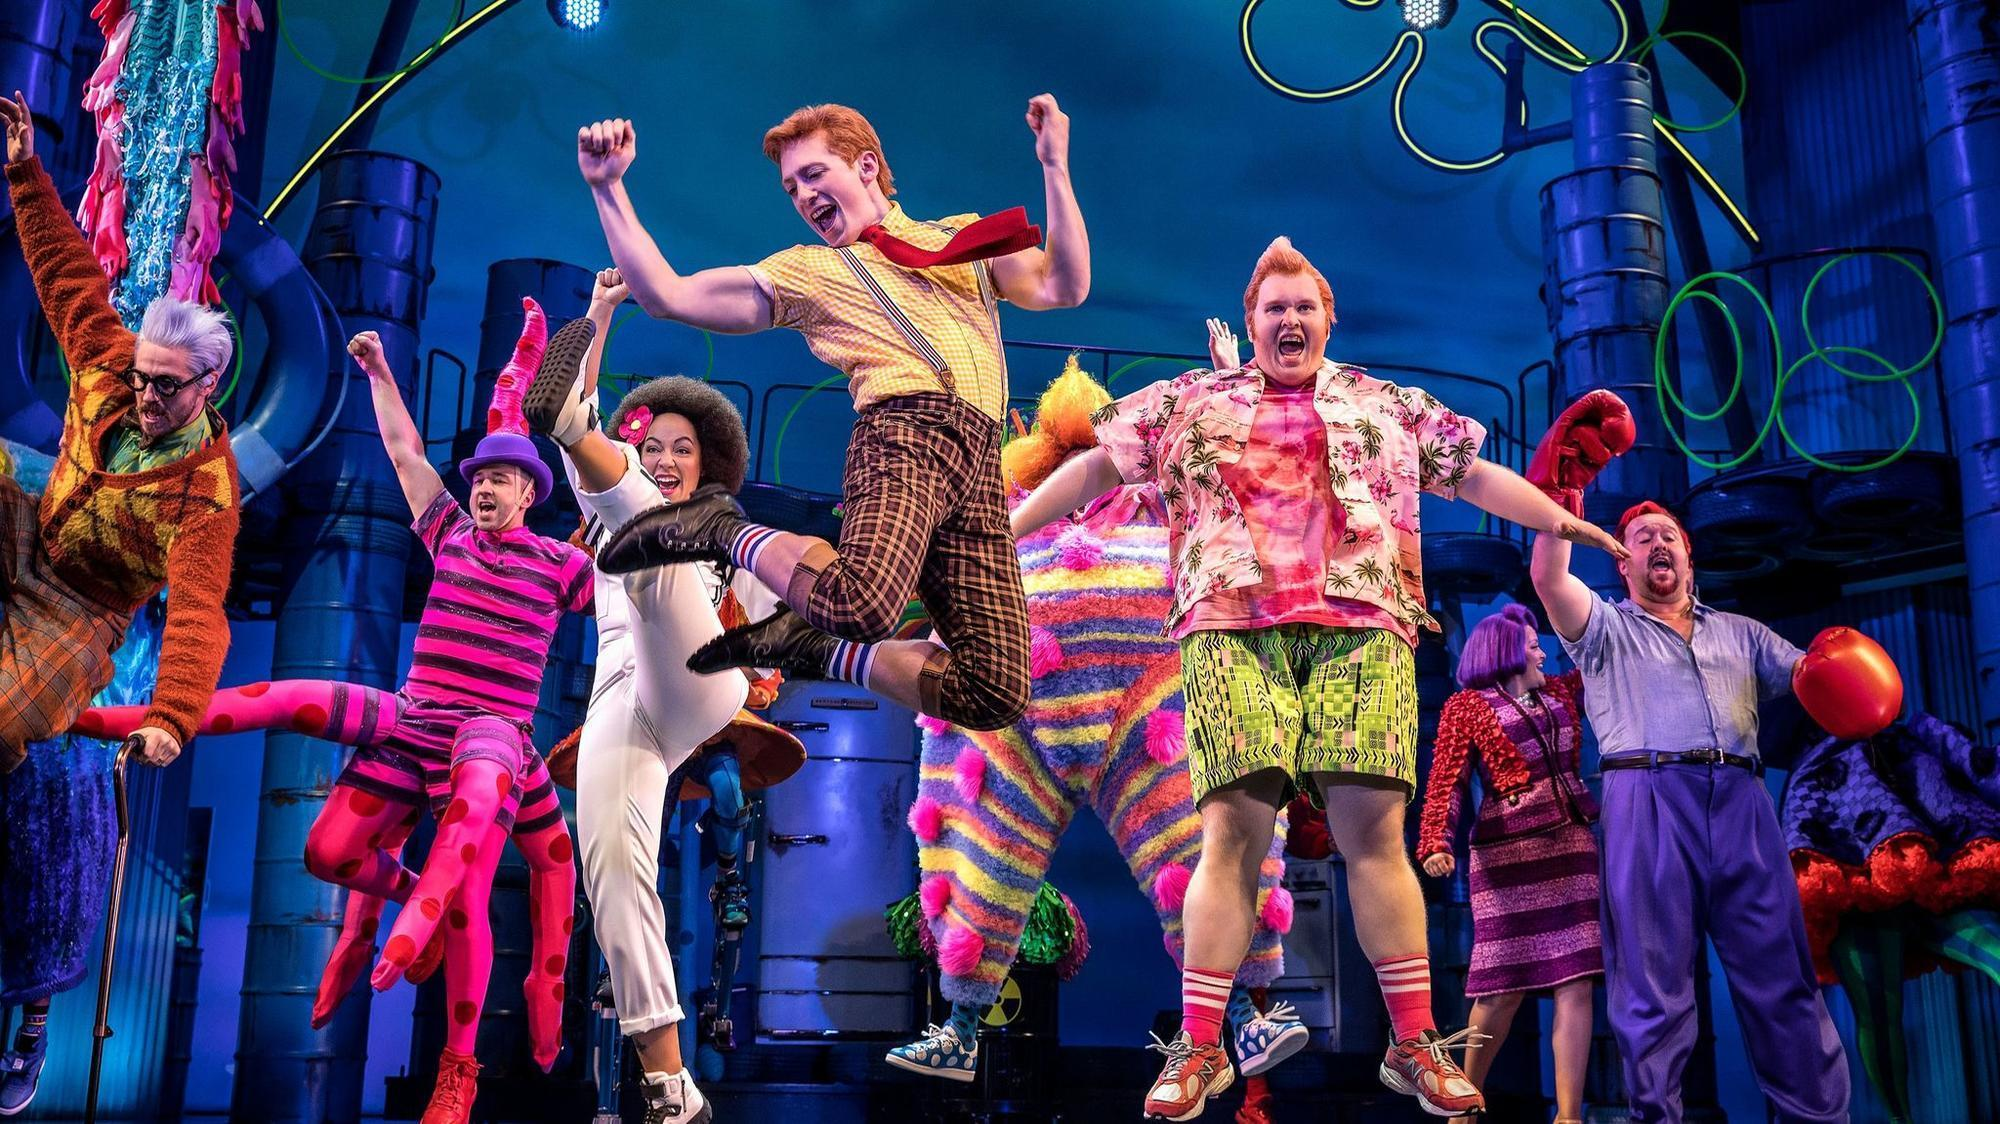 39 Spongebob Squarepants 39 Now Swims With The Broadway Sharks